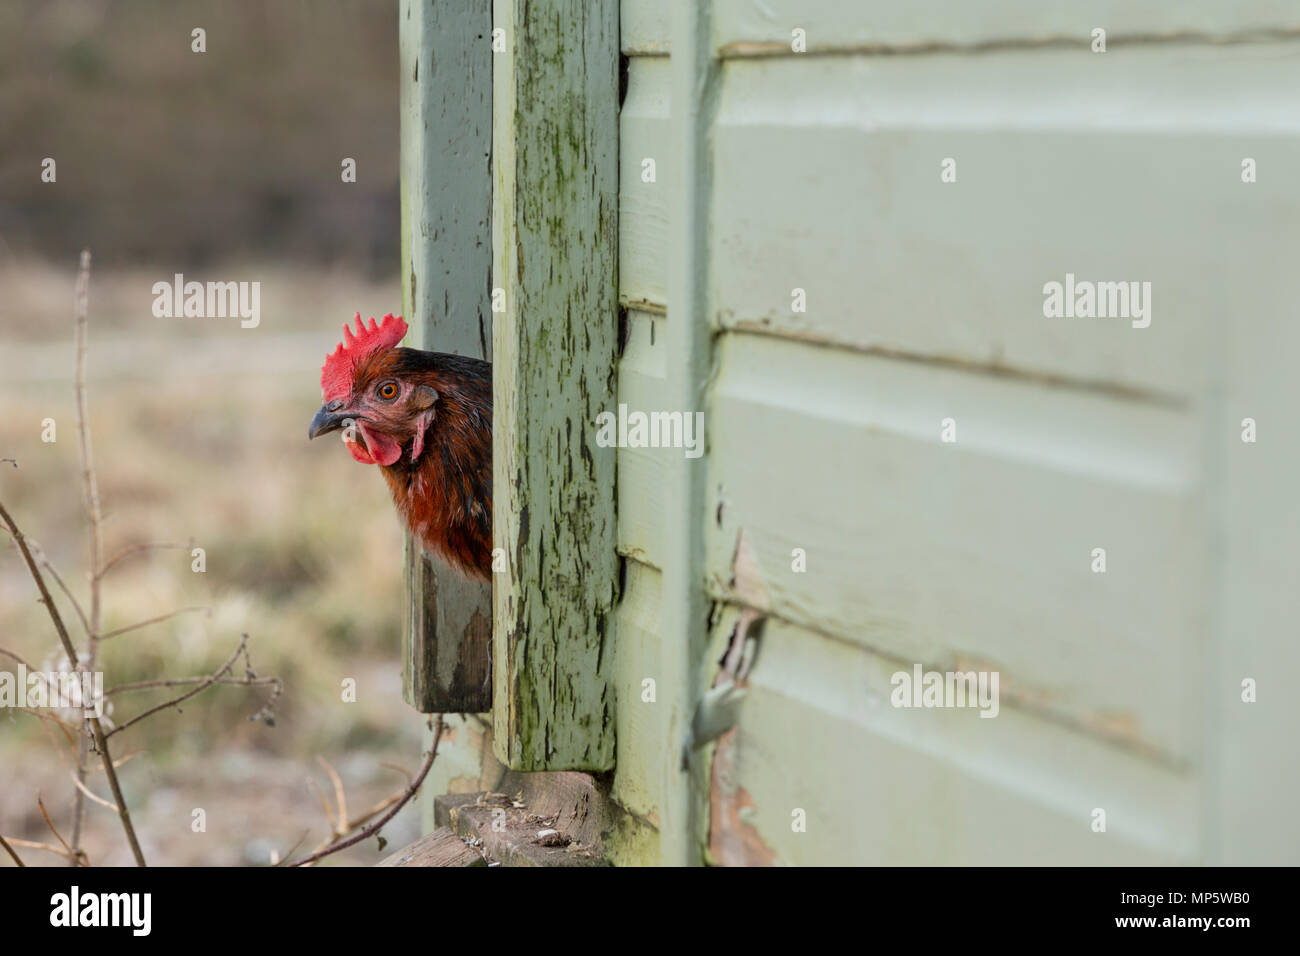 A black and tan hen emerging from a hen house. - Stock Image